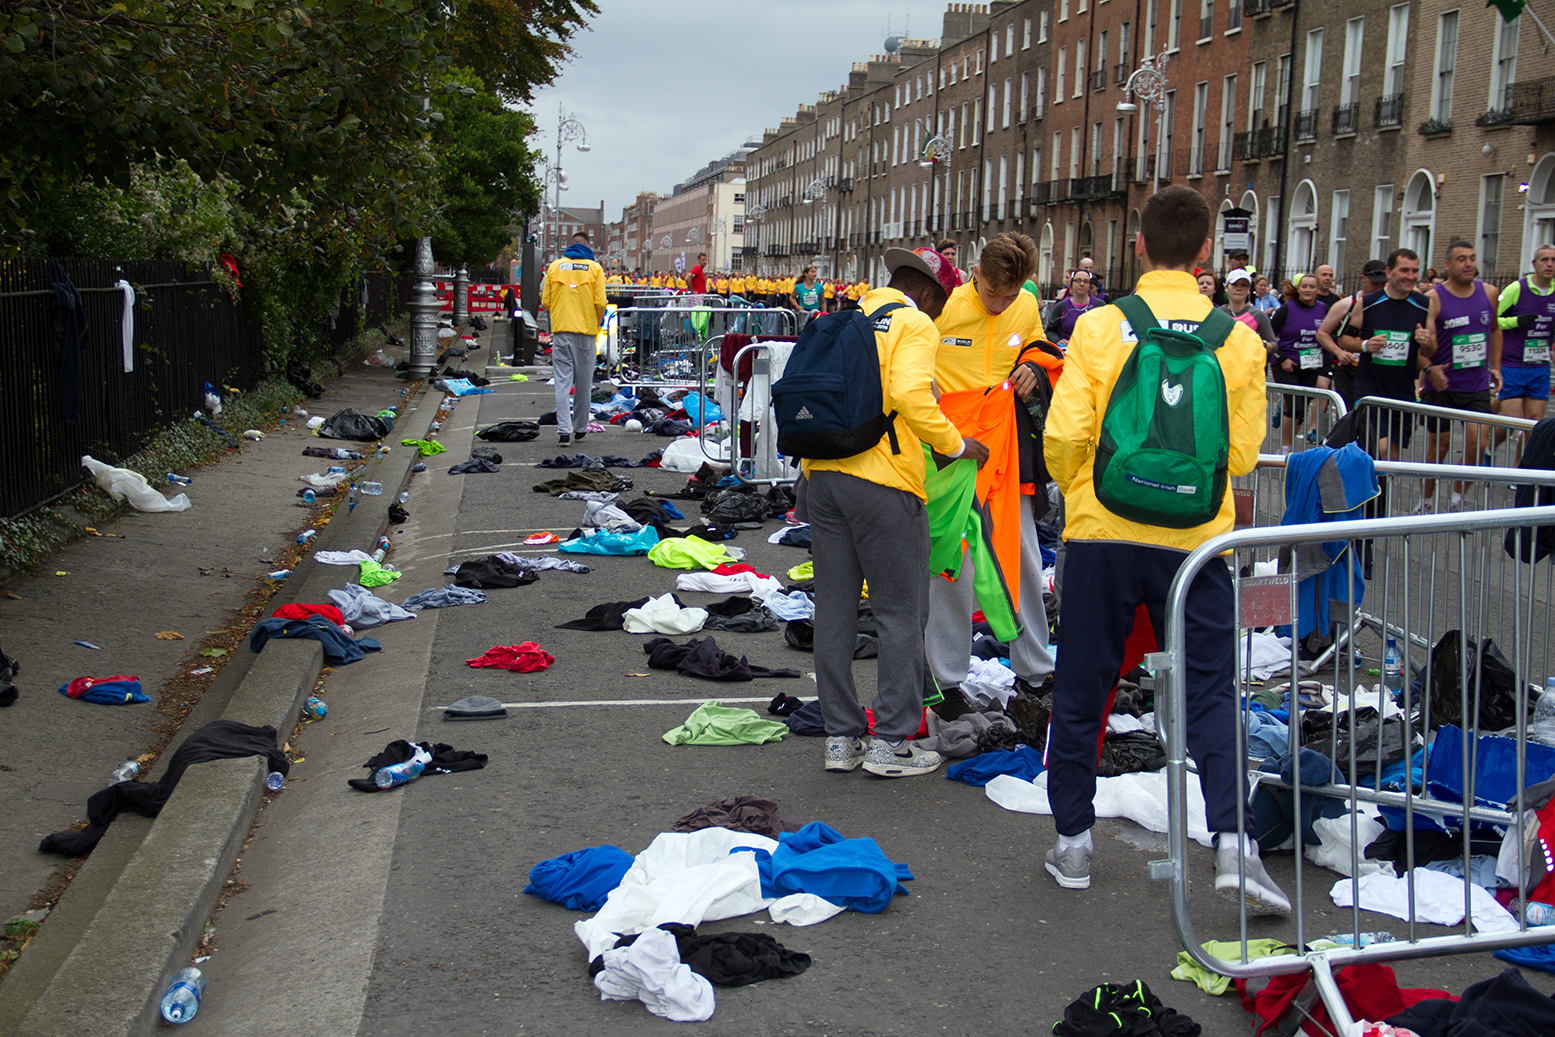 Discarded jumpers at the start line of the Dublin City marathon